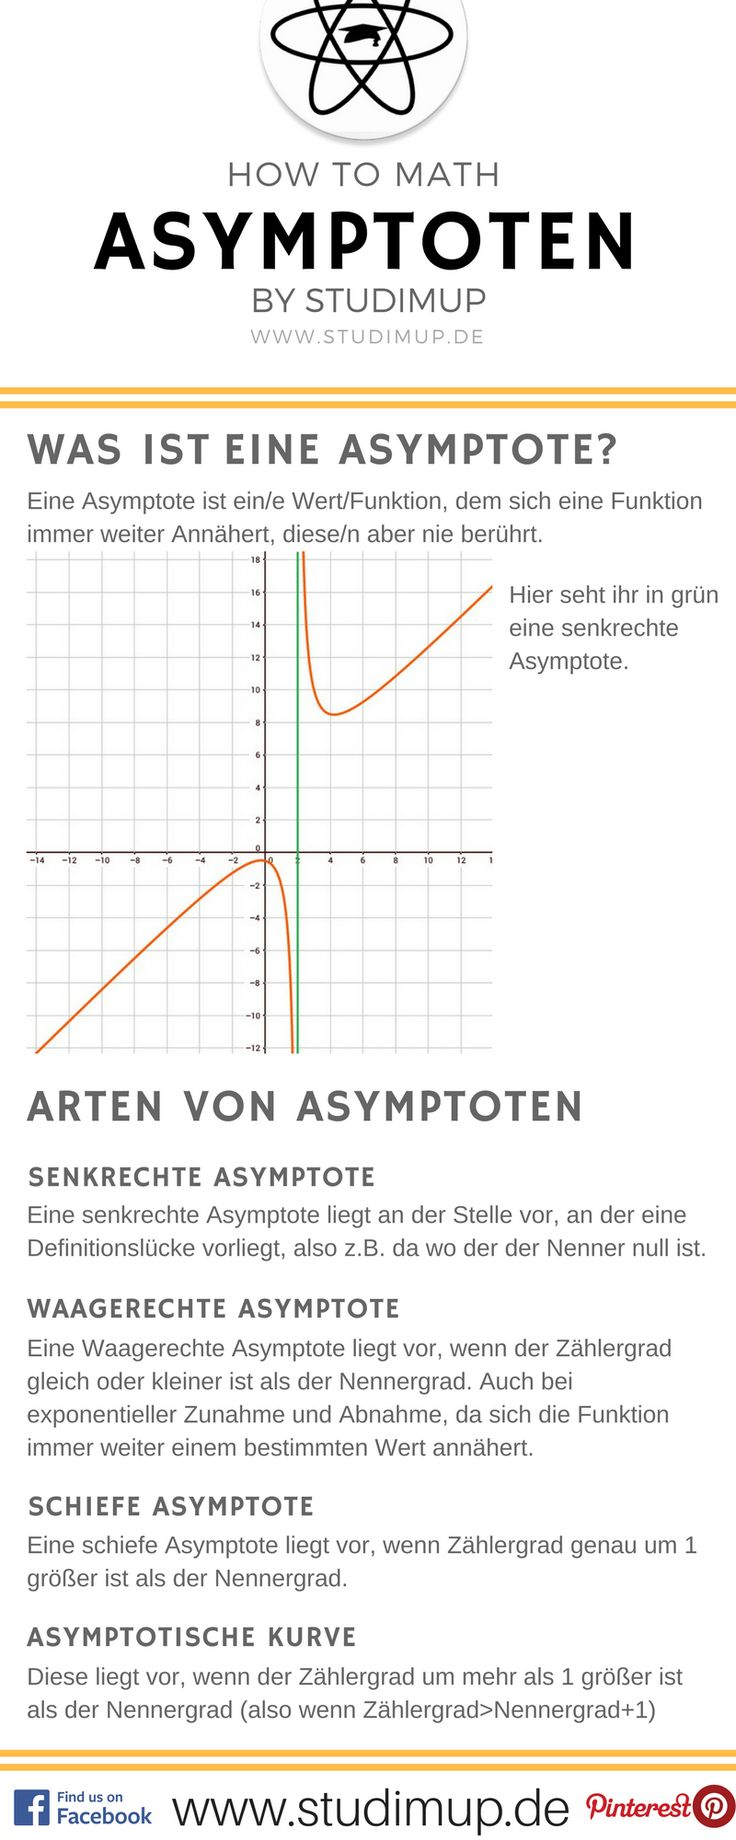 Cheat sheet for asymptotes, another point for the curve discussion in the math high school diploma. #Mathematics